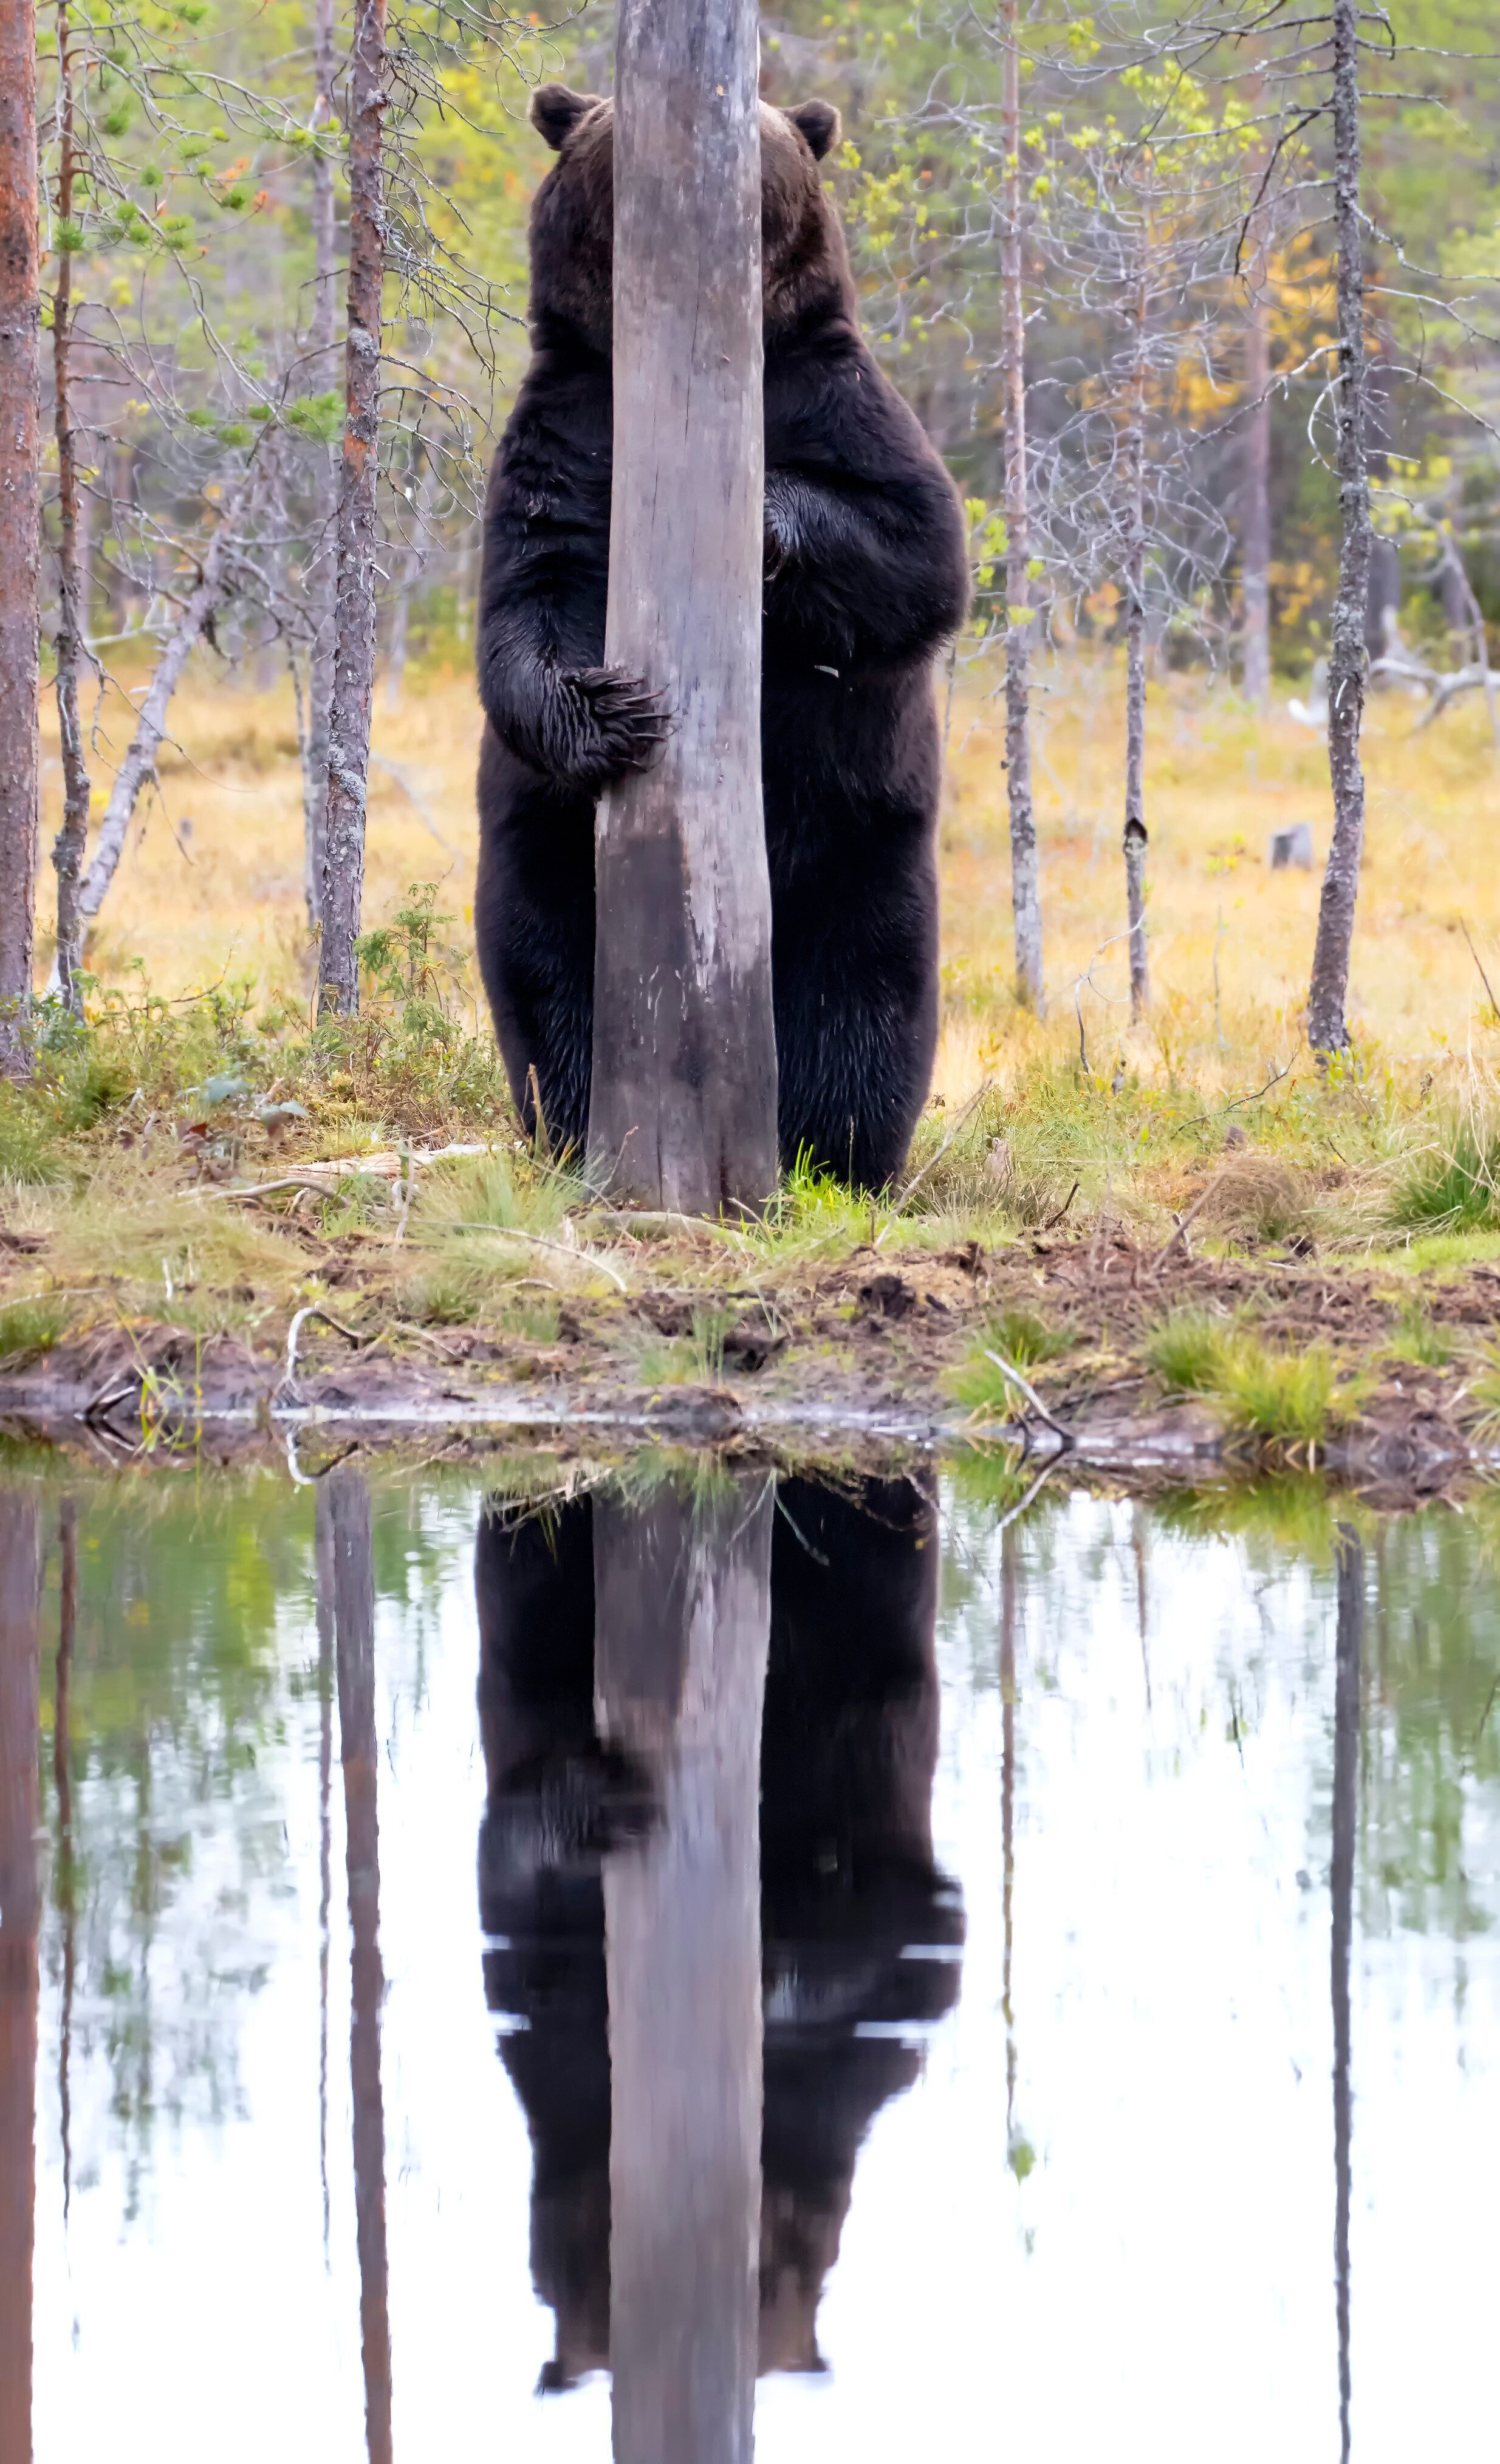 """Doggo"" features a brown bear in Kuhmo, East Finland."